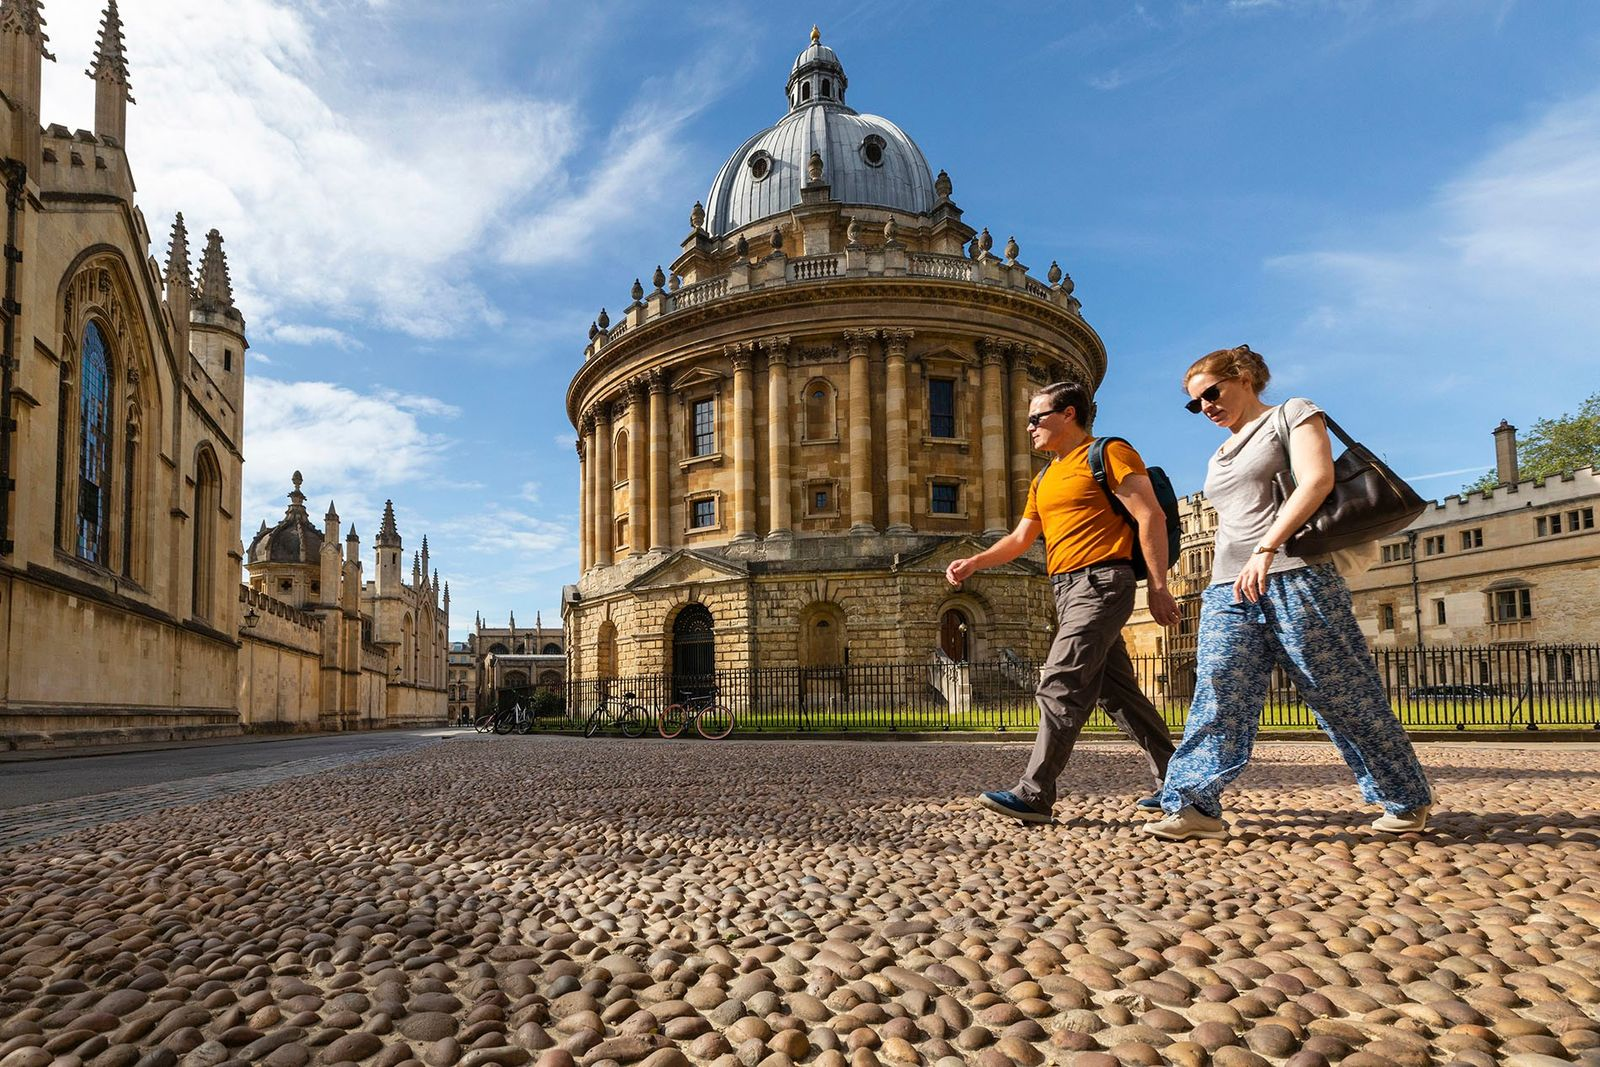 How to plan a walking tour through literary Oxford